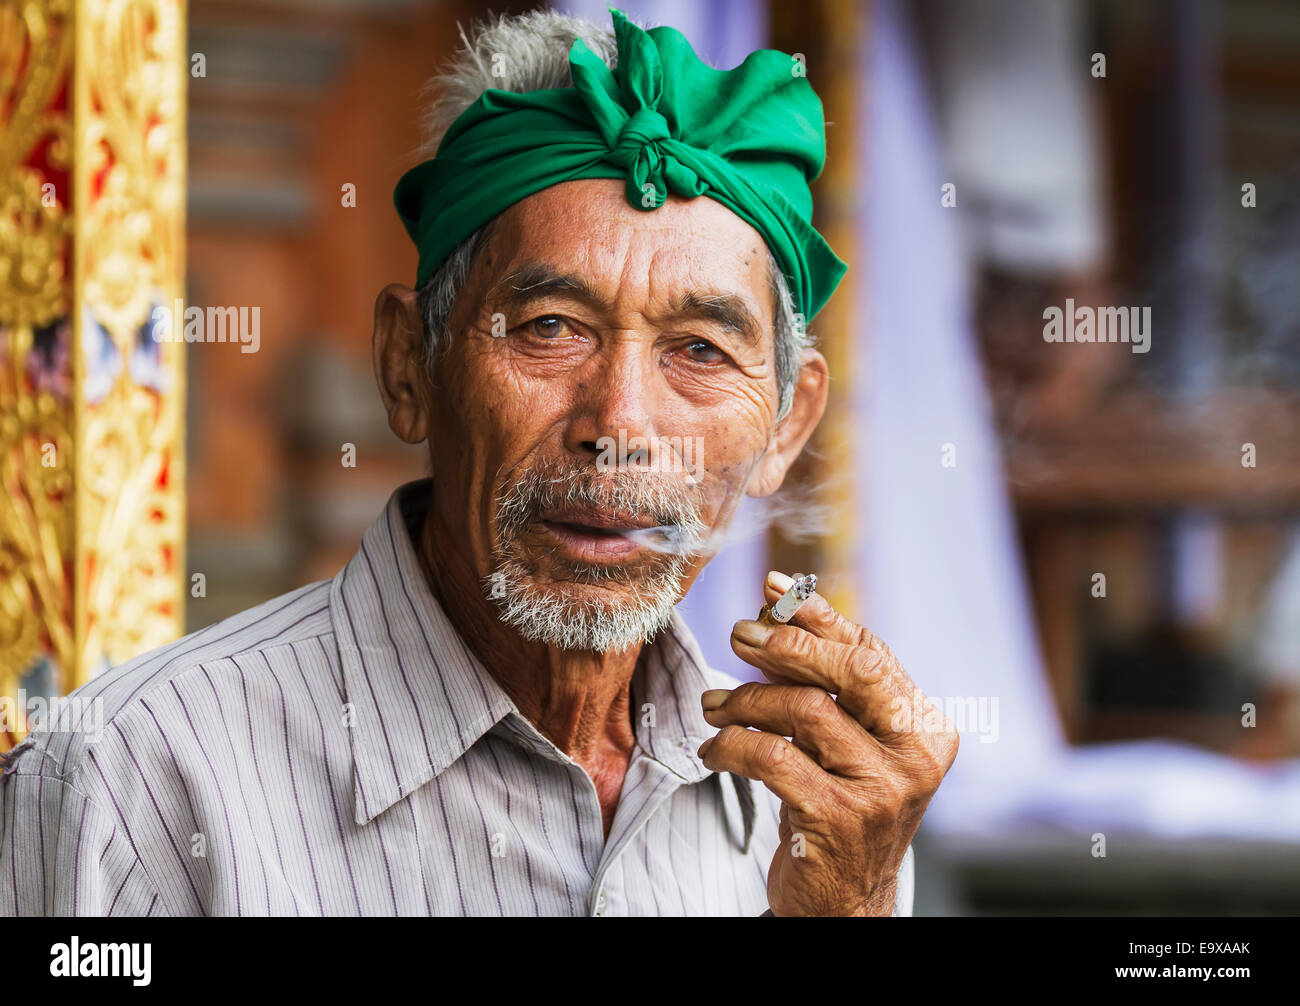 Indonesian Men Smoking Stock Photos Empul V3 Ty Balinese Man A Cigarette At Tiirta Temple Tampaksiring Bali Indonesia